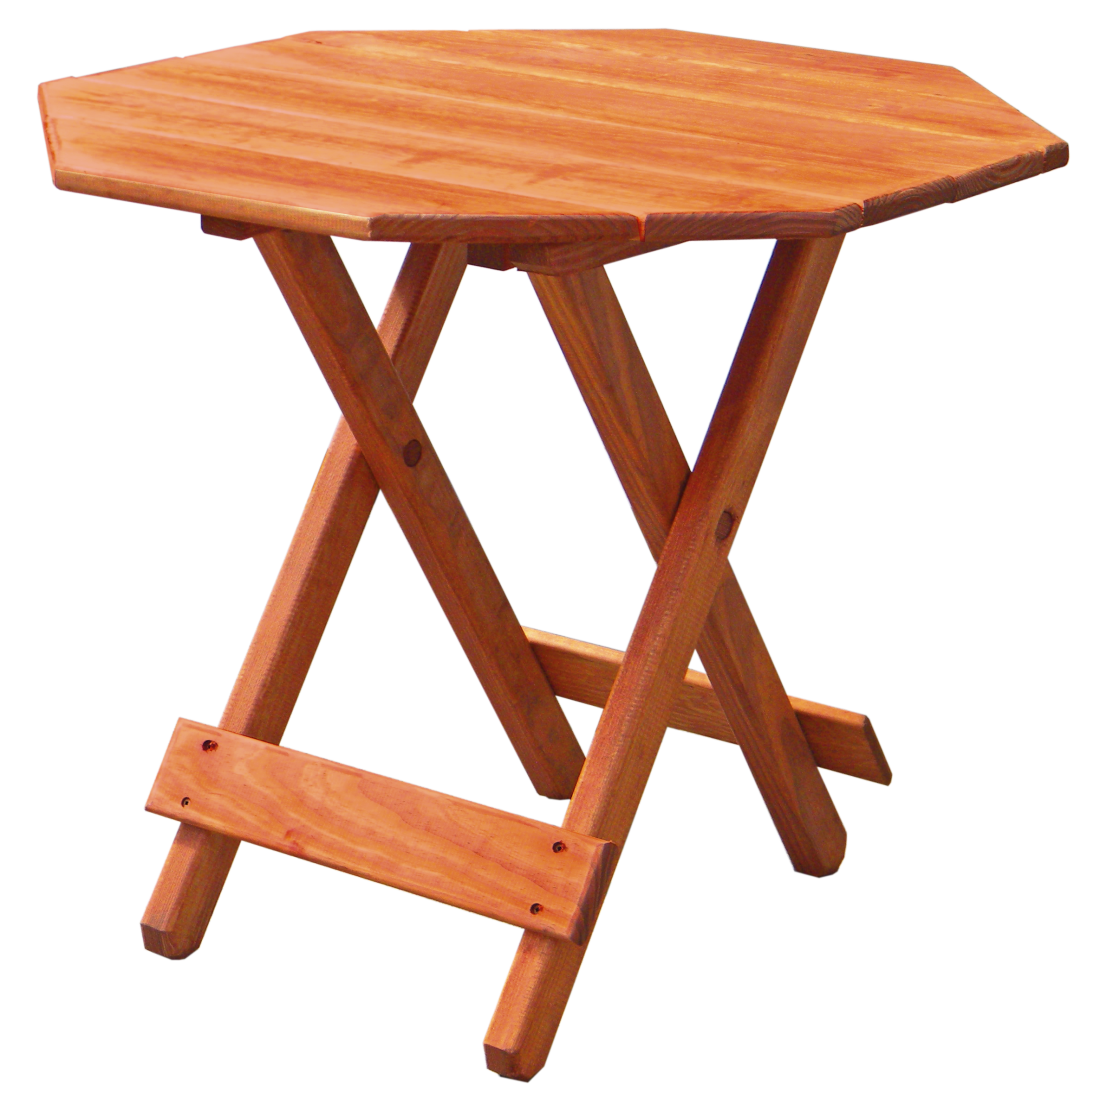 4 Foot Folding Tables picture on furniture and ornamentals with 4 Foot Folding Tables, Folding Table 4d5407844b1e753a788247fbe3a11e36